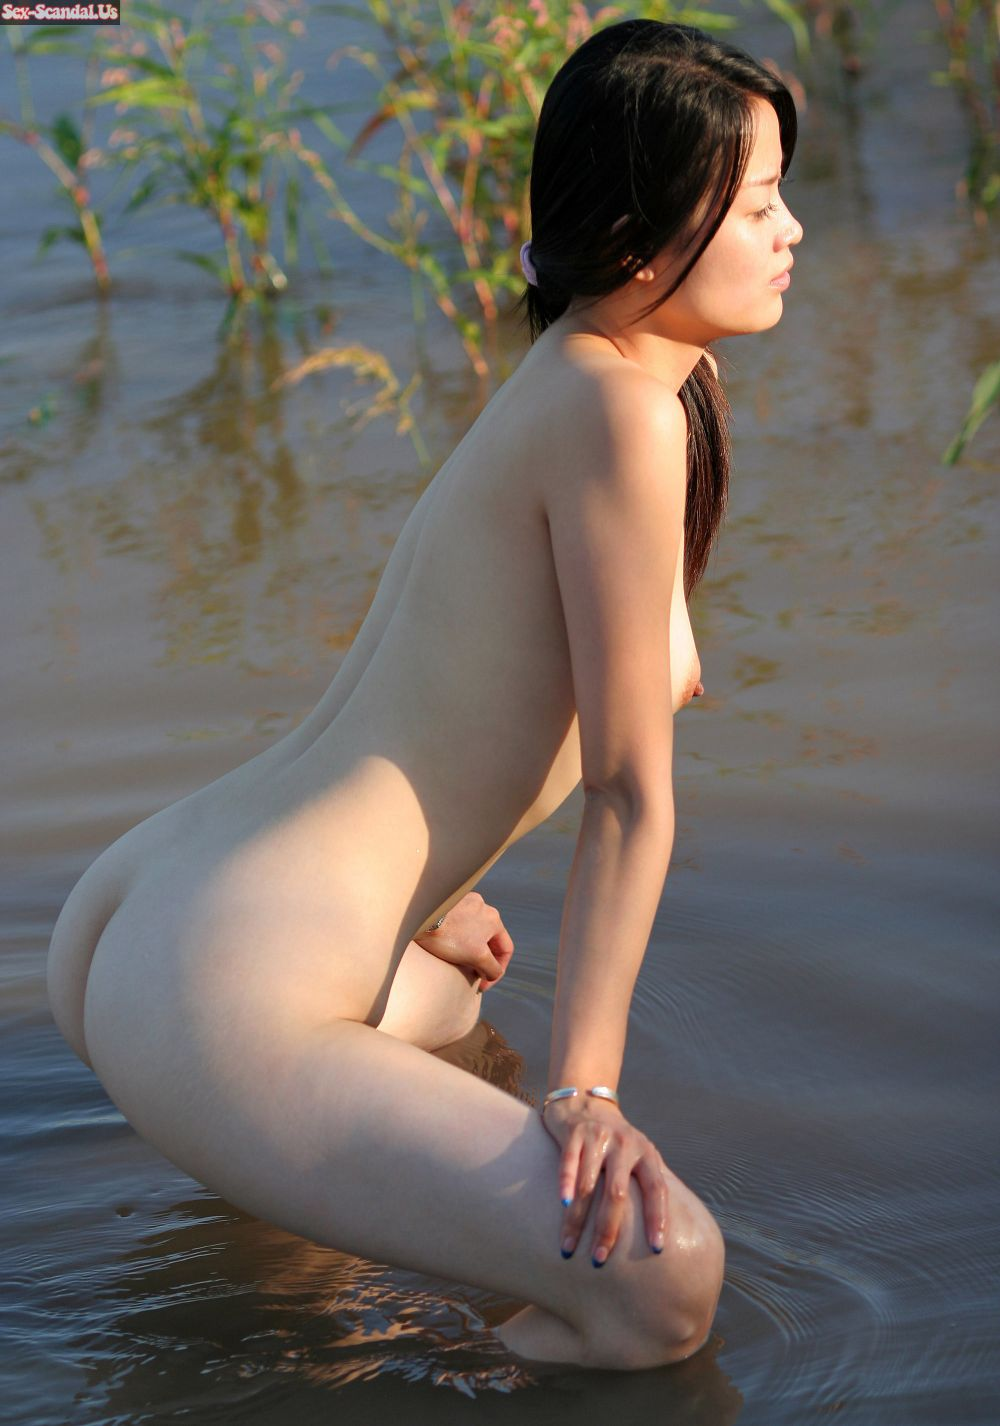 Hot Chinese Girls Pics Nude Art By Model  Yang Fang -6050